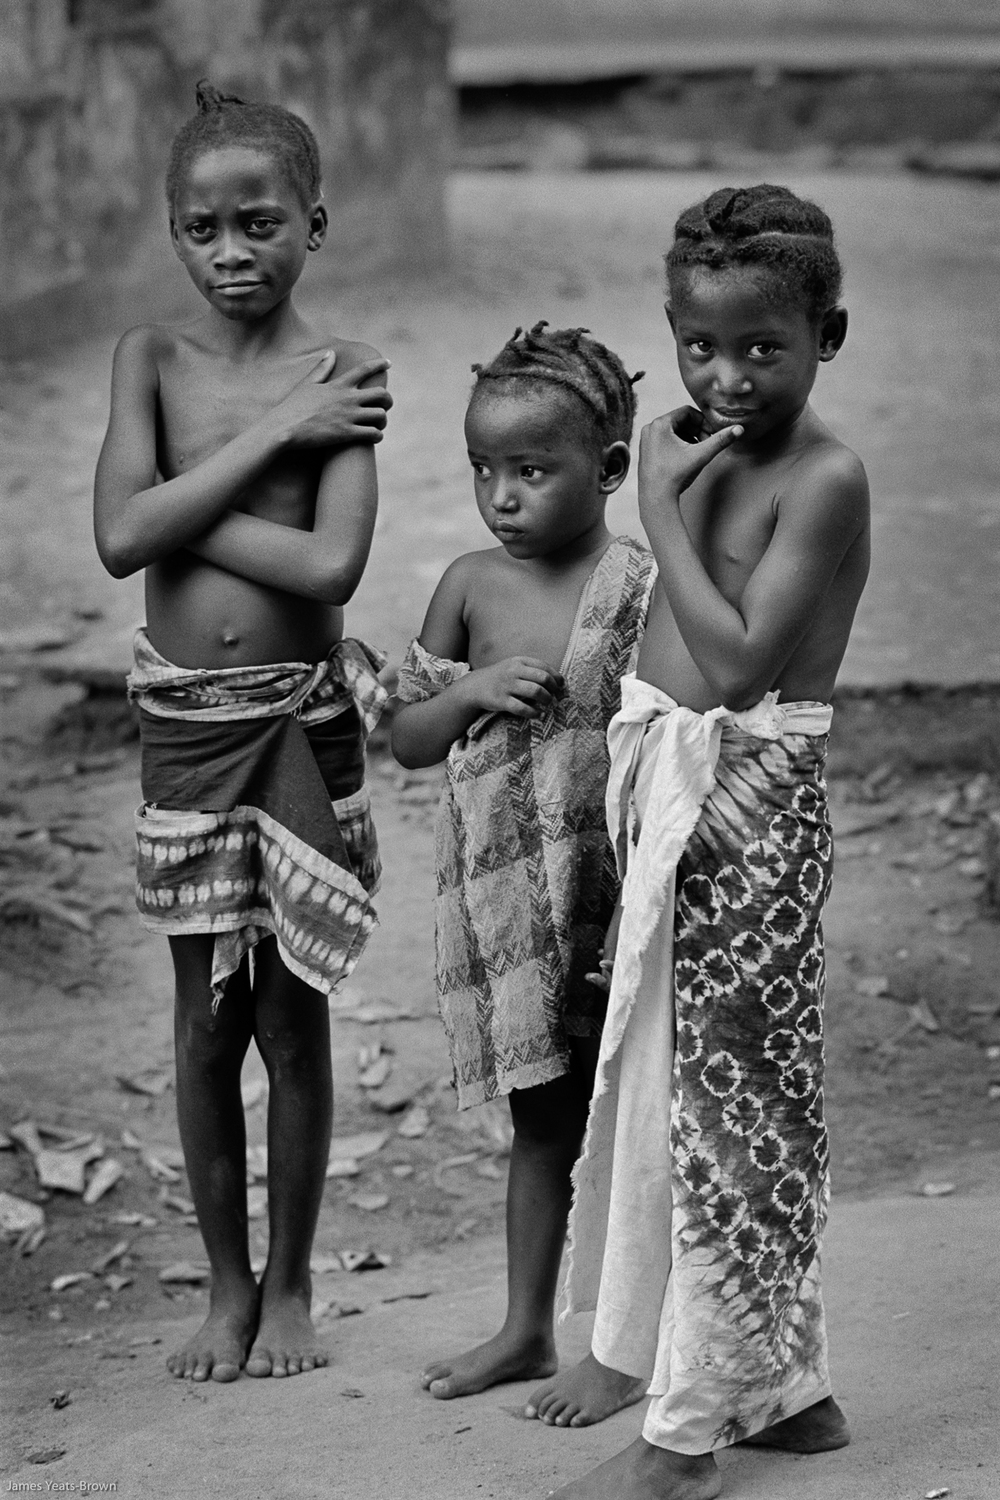 James Yeats-Brown-Sierra Leone-105.jpg